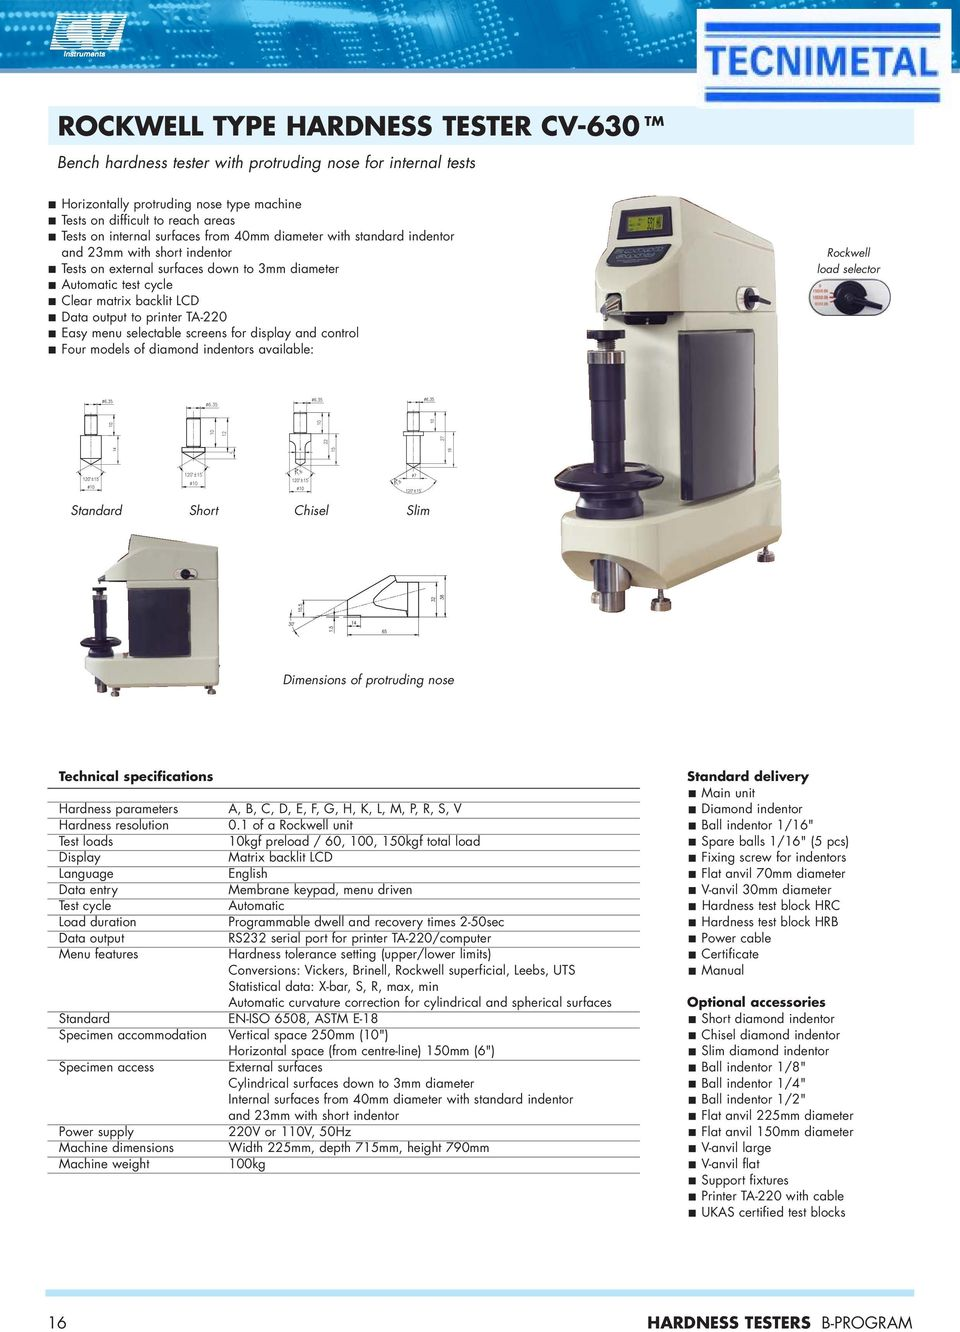 TA-220 Easy menu selectable screens for display and control Four models of diamond indentors available: Rockwell load selector Standard Short Chisel Slim Dimensions of protruding nose Hardness